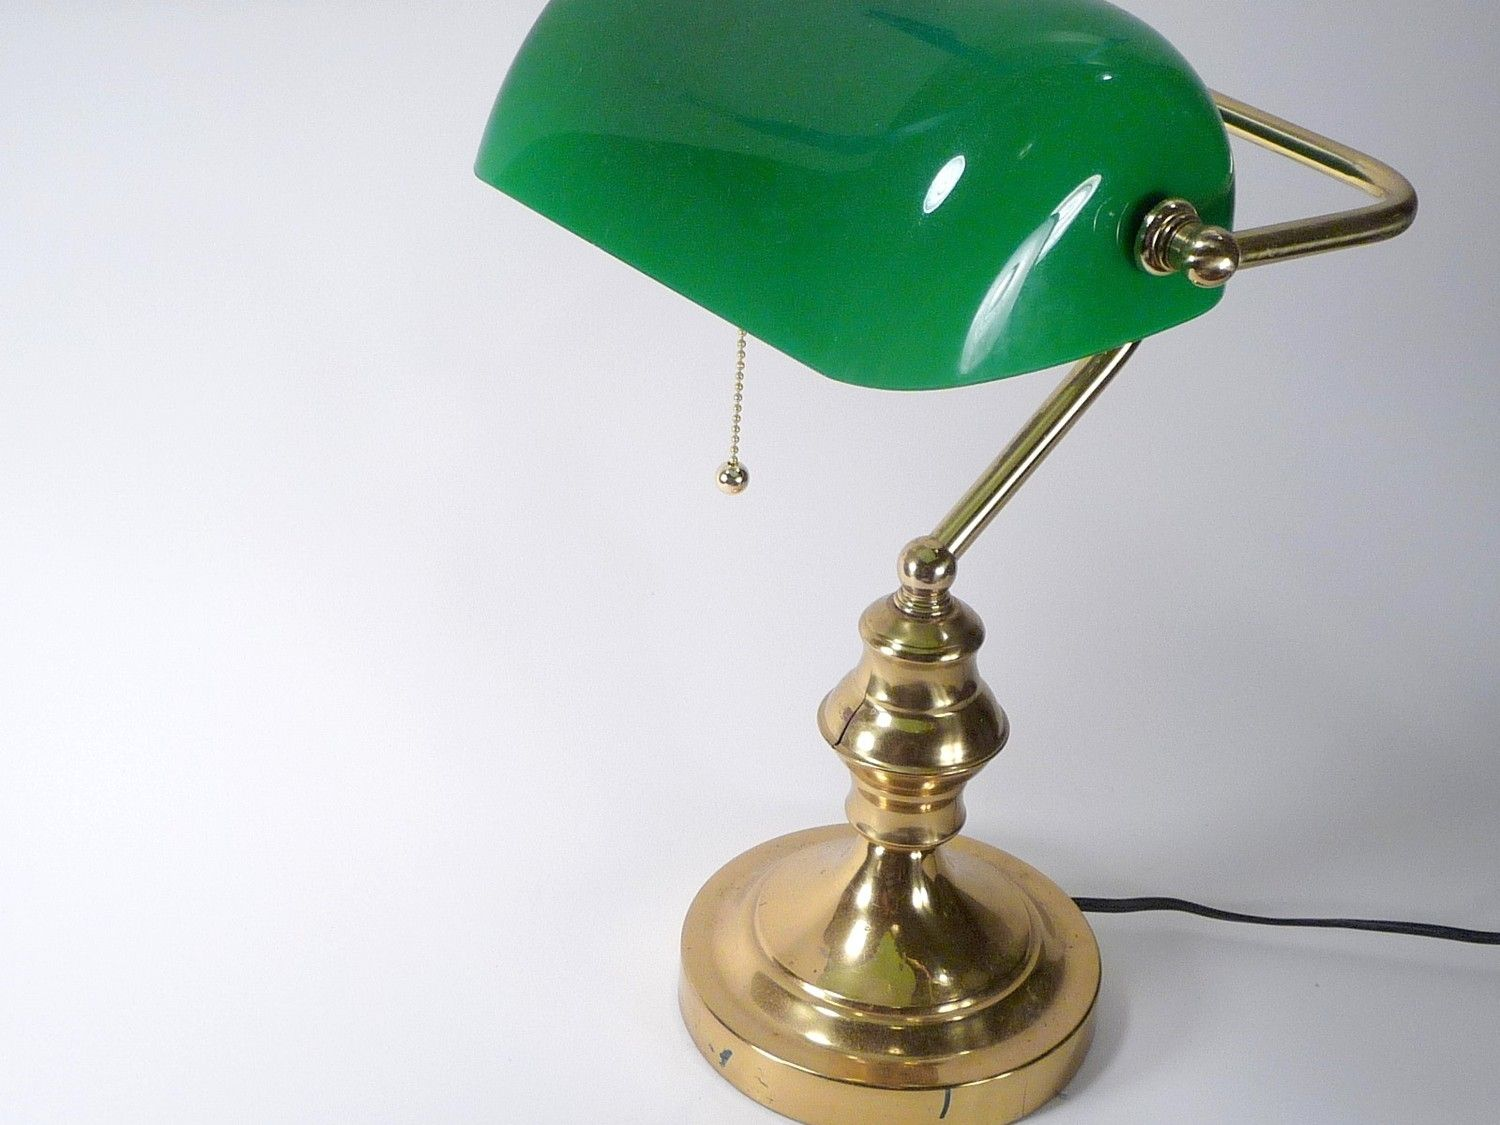 Antique Brass Bankers Desk Lamp - Antique Brass Bankers Desk Lamp Http://i12manage.com Pinterest